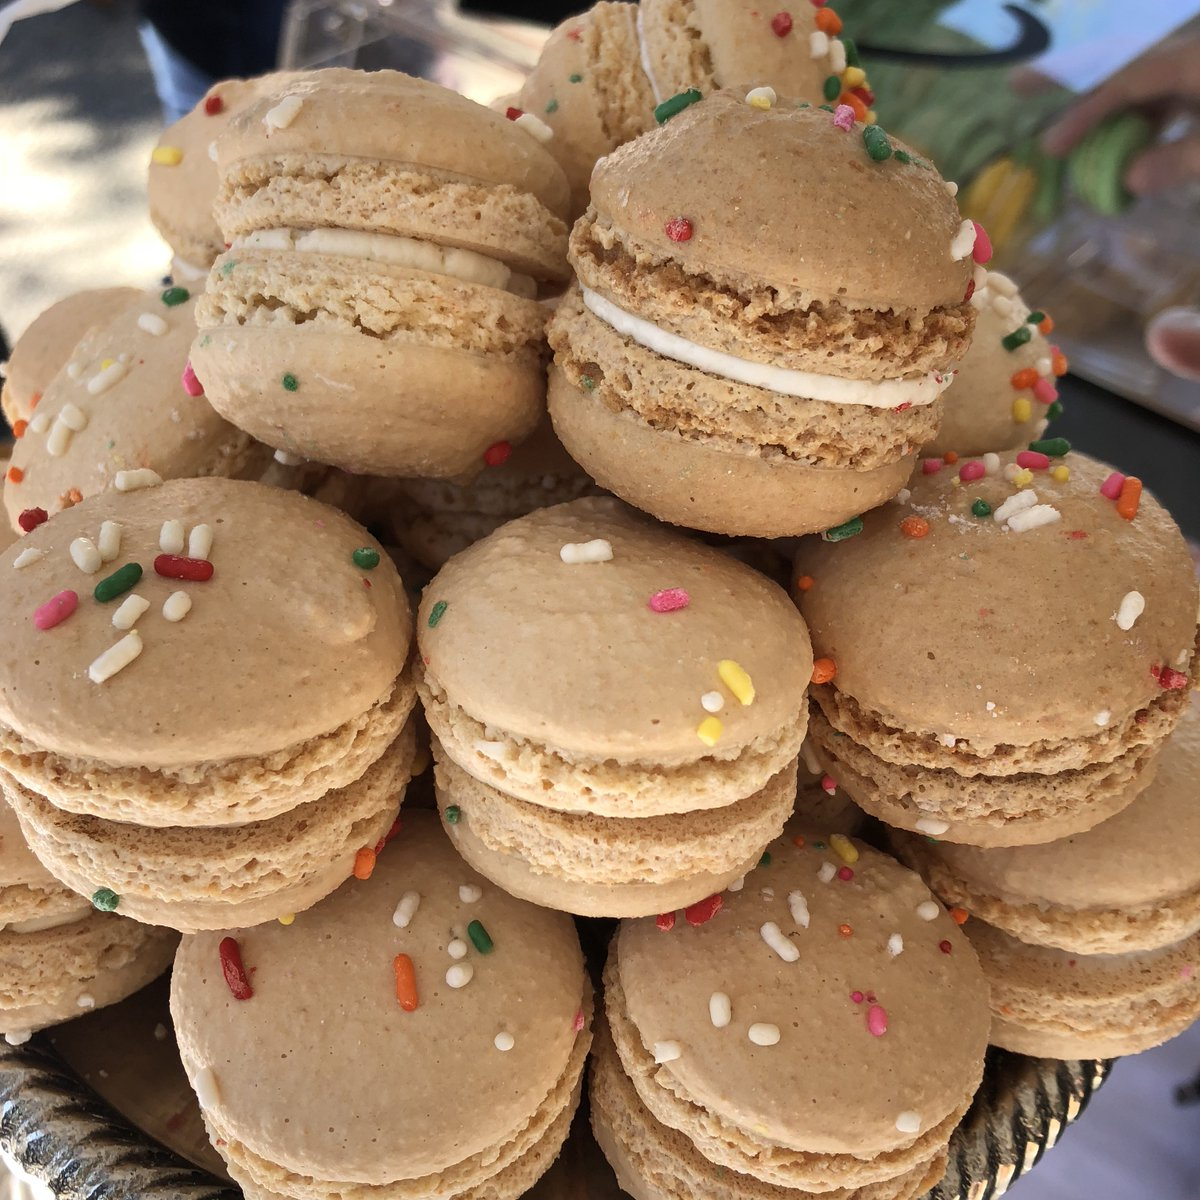 Need a mid-week pick-me-up? Snag a box of <a href=https://twitter.com/AmeliesBakery target=blank>@AmeliesBakery</a> famous macarons 🎁 <a href=https://t.co/GBIKl7NrtG target=blank>https://t.co/GBIKl7NrtG</a>